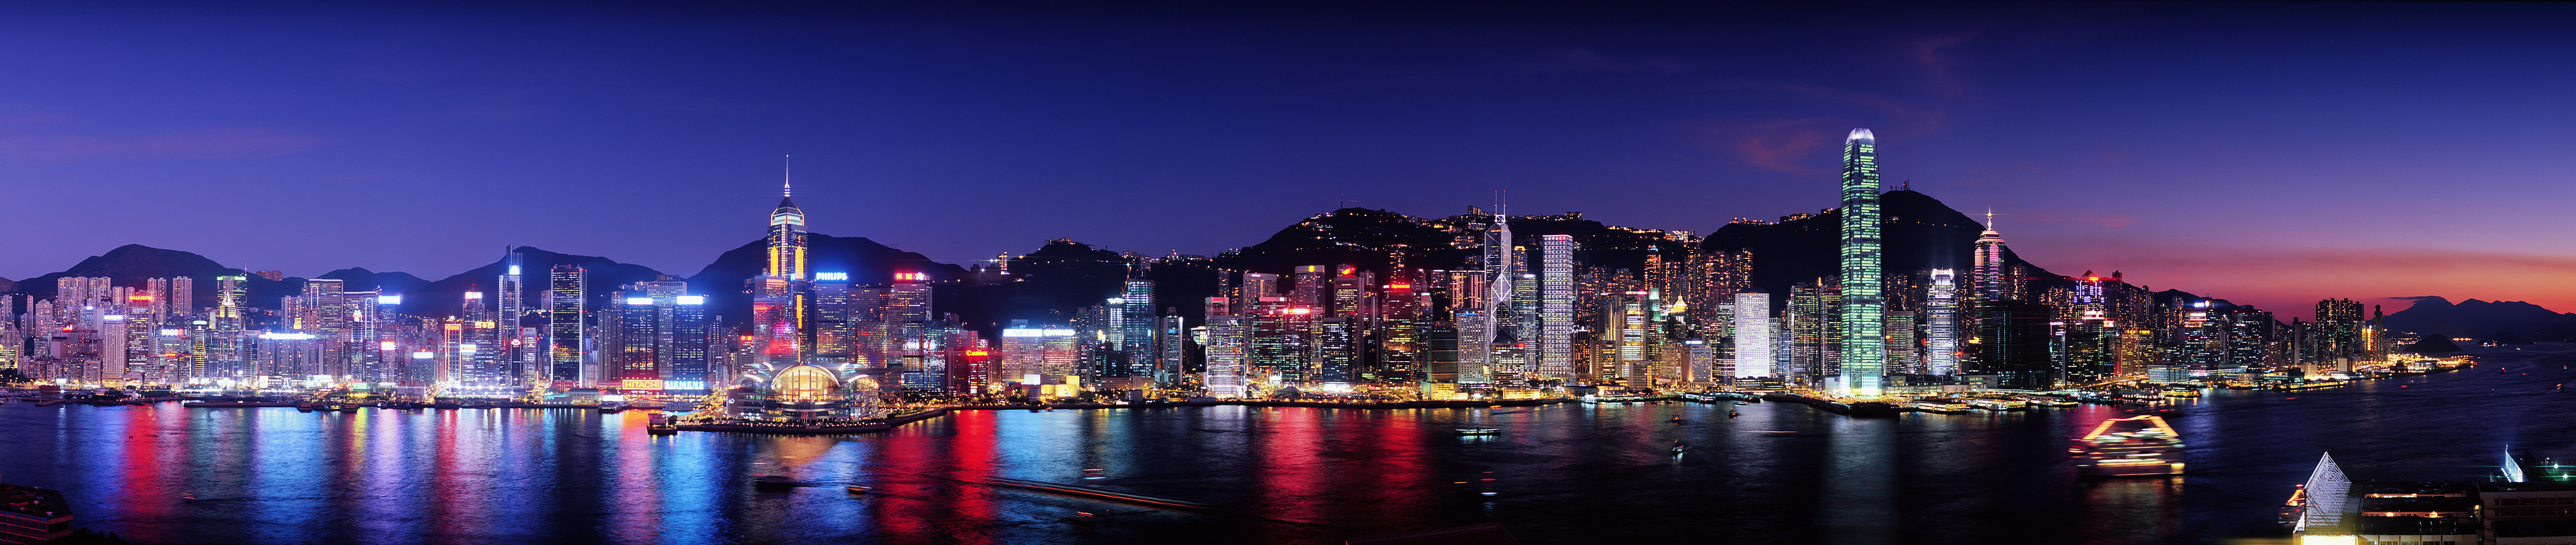 Hong_Kong_at_night.jpg